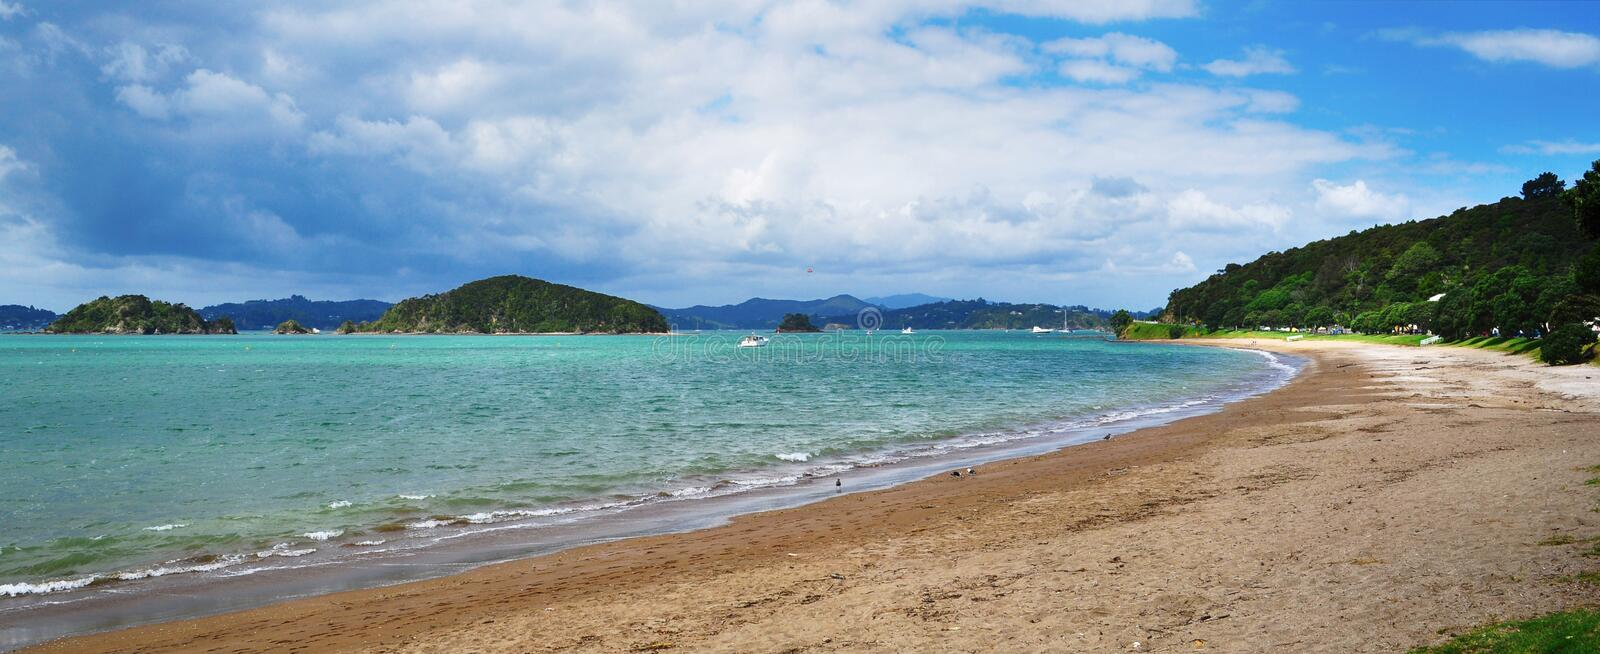 Bay of Islands, New Zealand. Beautiful day in the Bay of Islands, New Zealand royalty free stock photography